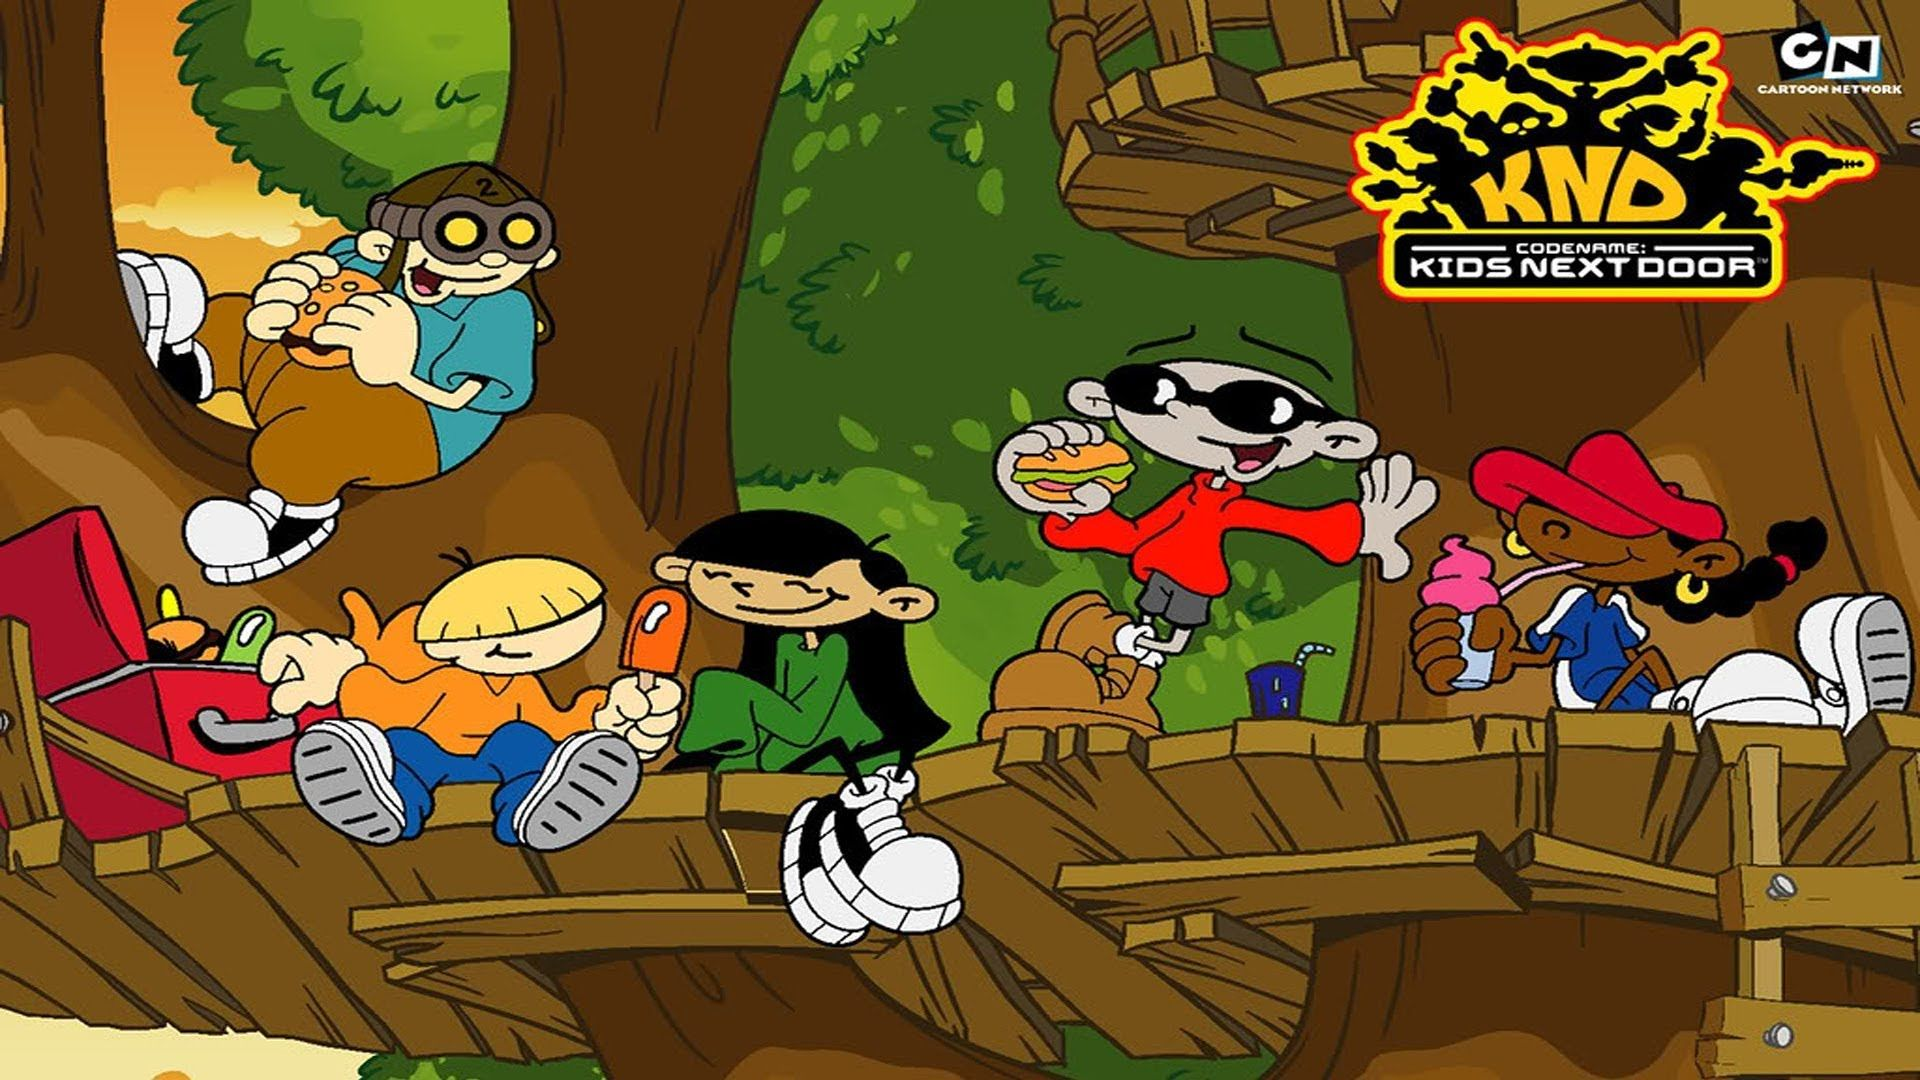 Codename Kids Next Door Cartoon Network